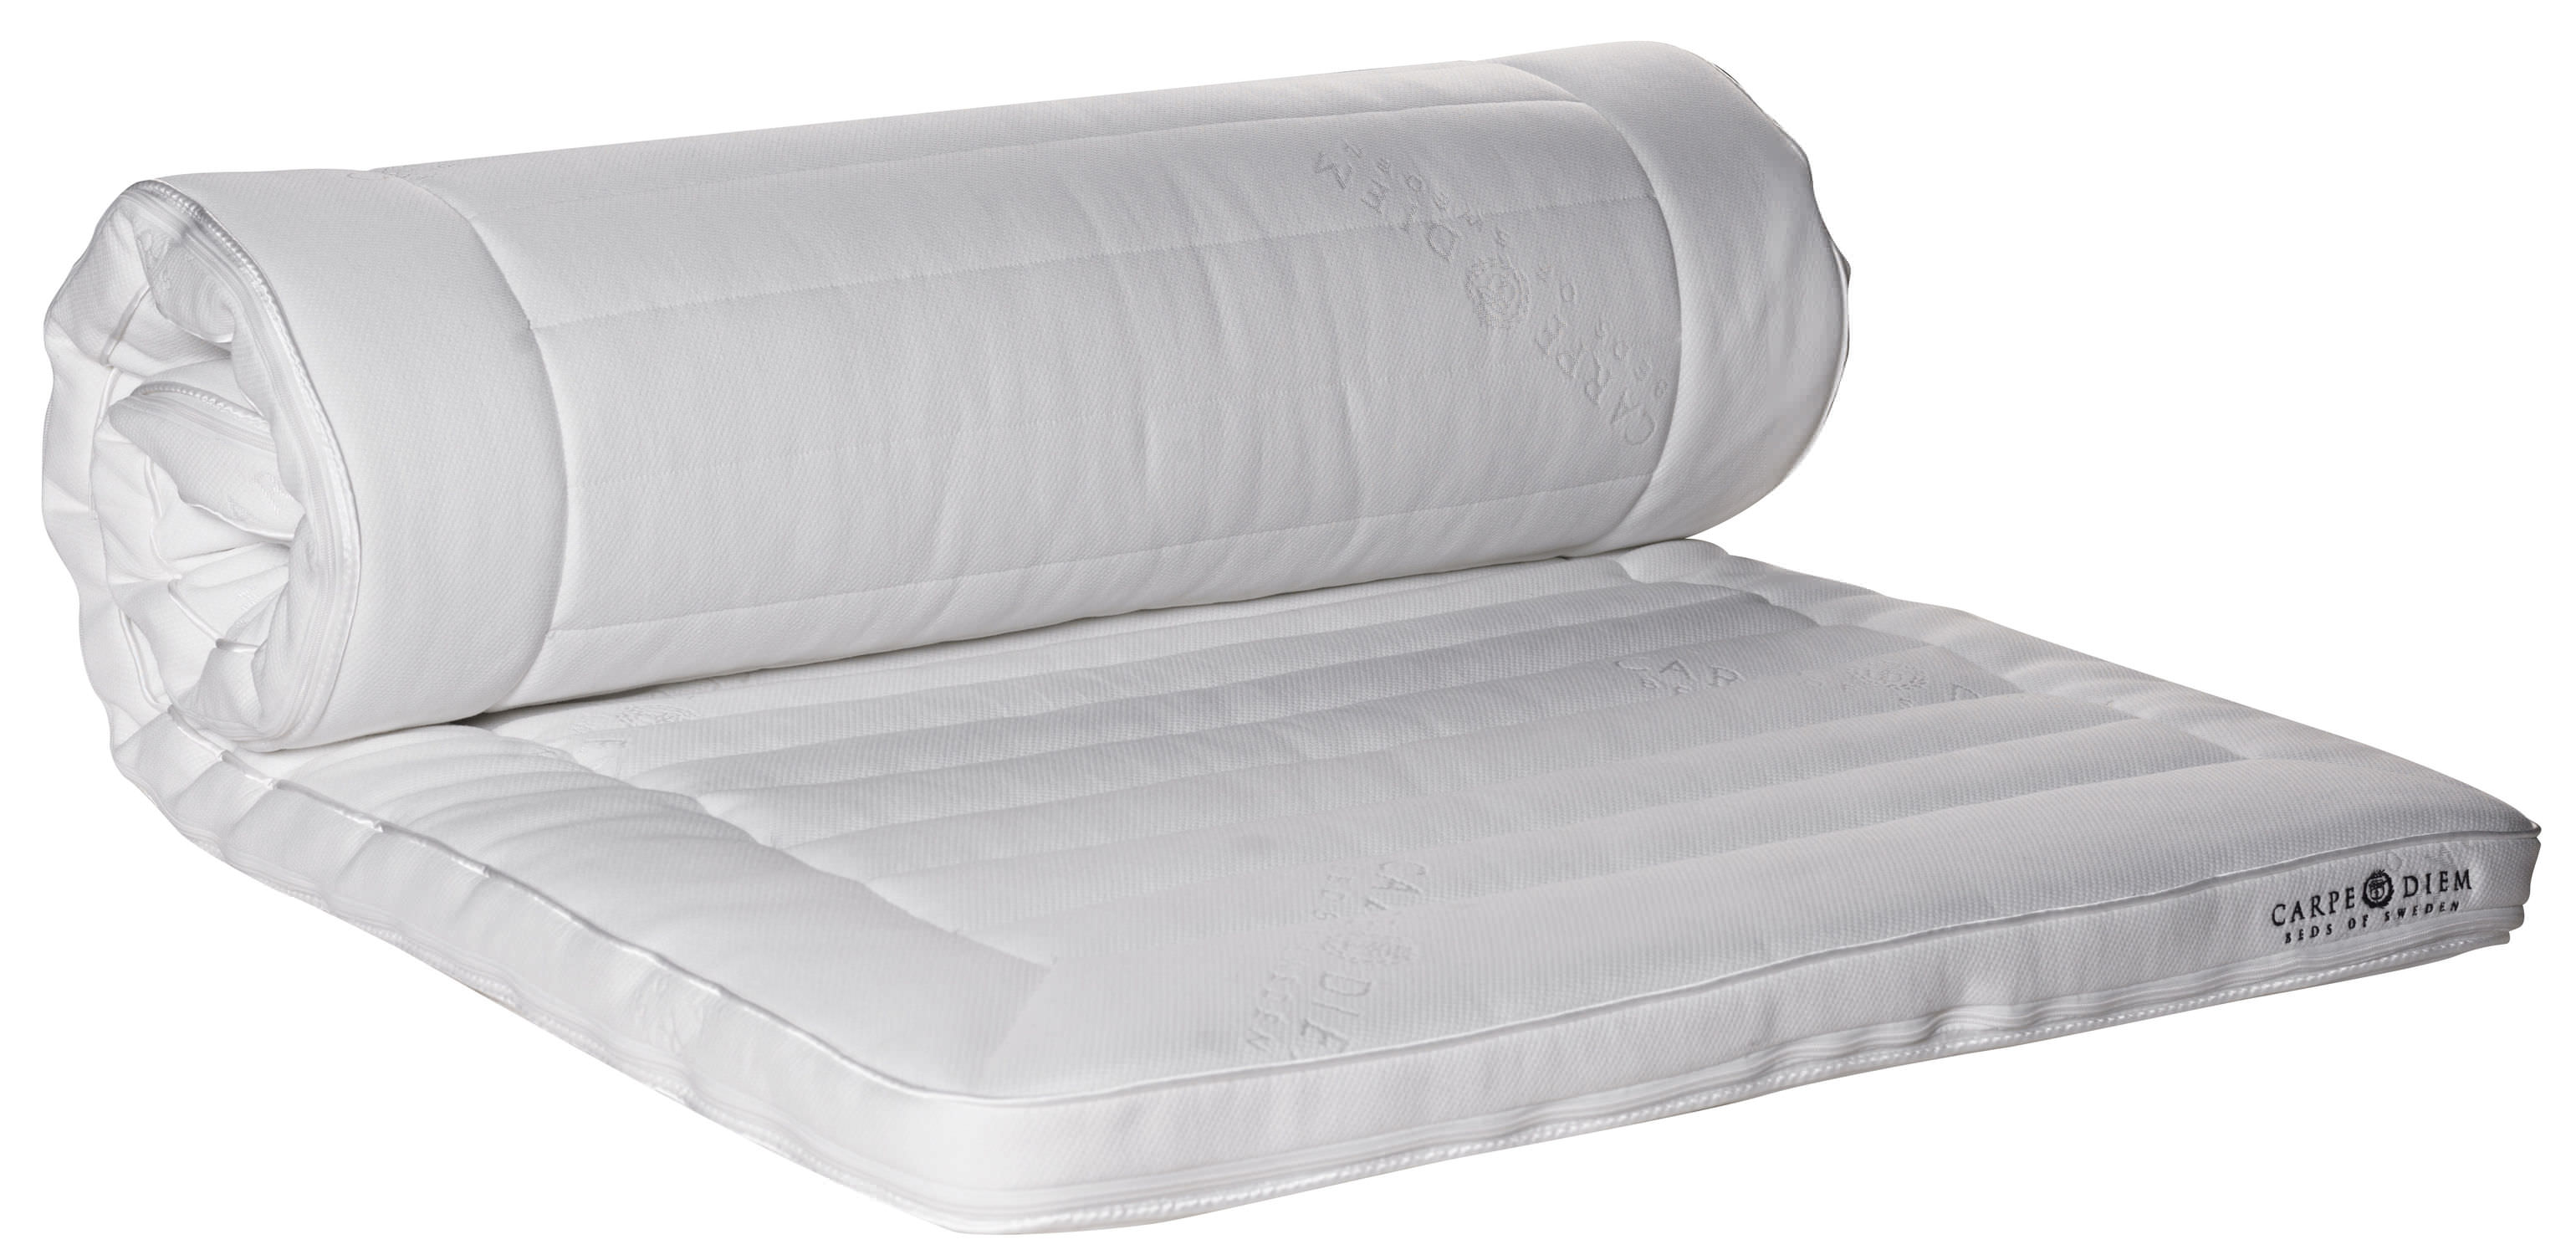 Who Sells The Cheapest Premium 12-Inch Twin Memory Foam Mattress & Gift Mattress Cover On Line